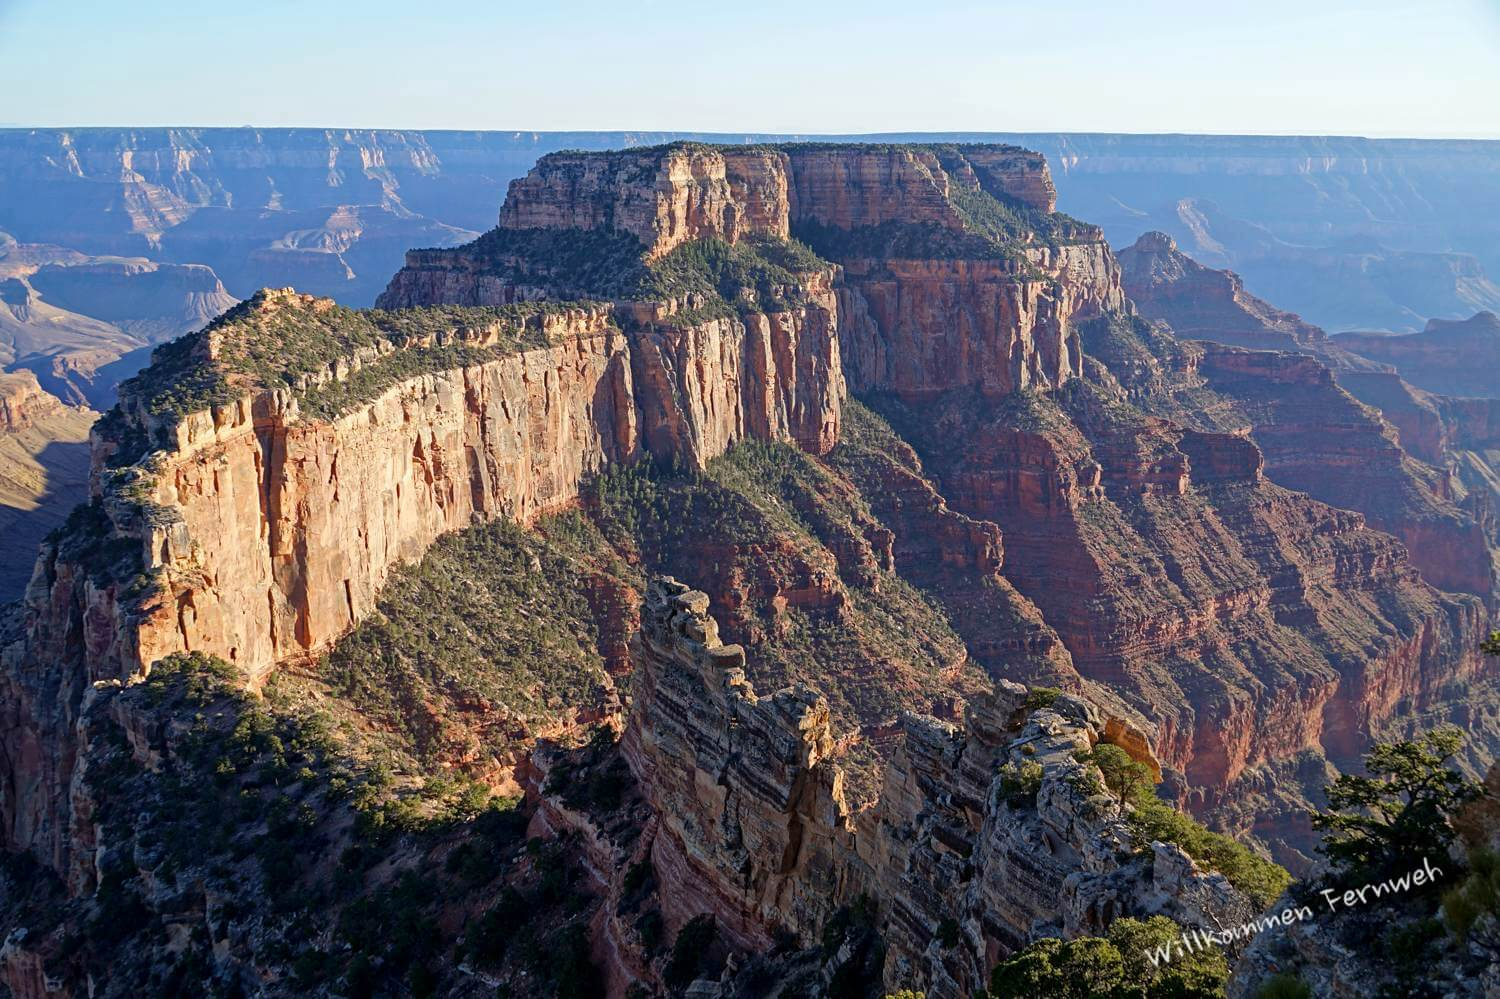 Wotan's Throne vom Cape Royal aus, Grand Canyon North Rim